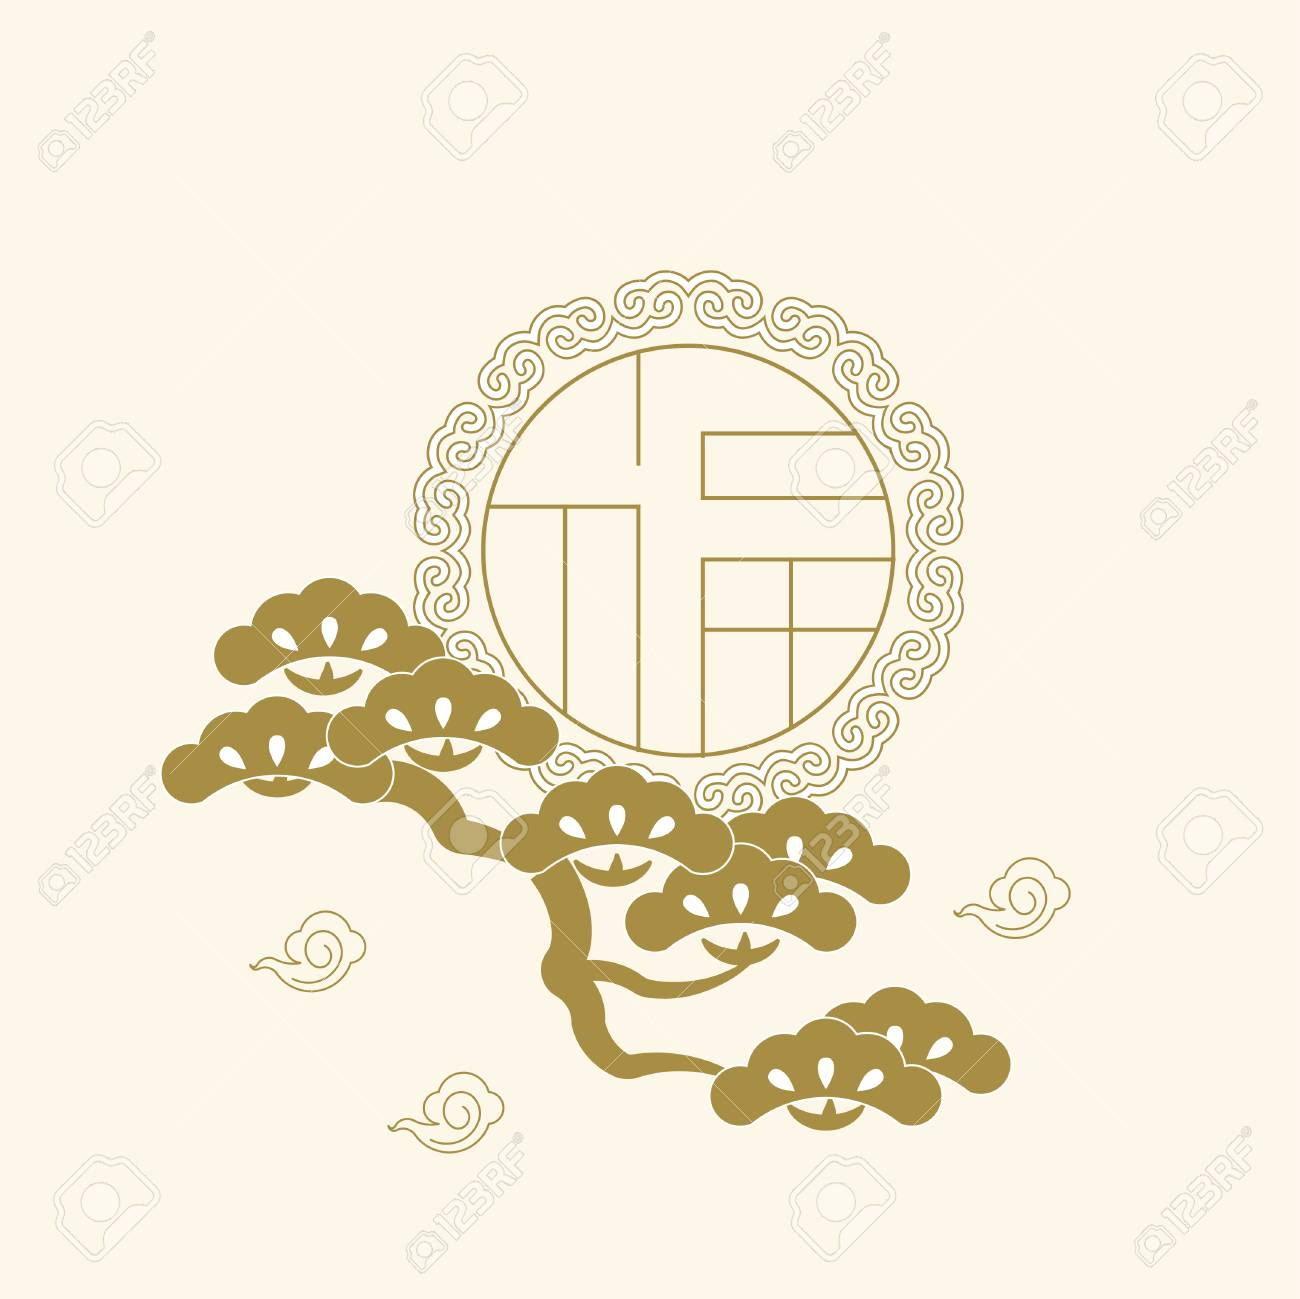 """New Year monochrome greeting card with asian traditional style, Chinese character """"blessed """" - 94577467"""